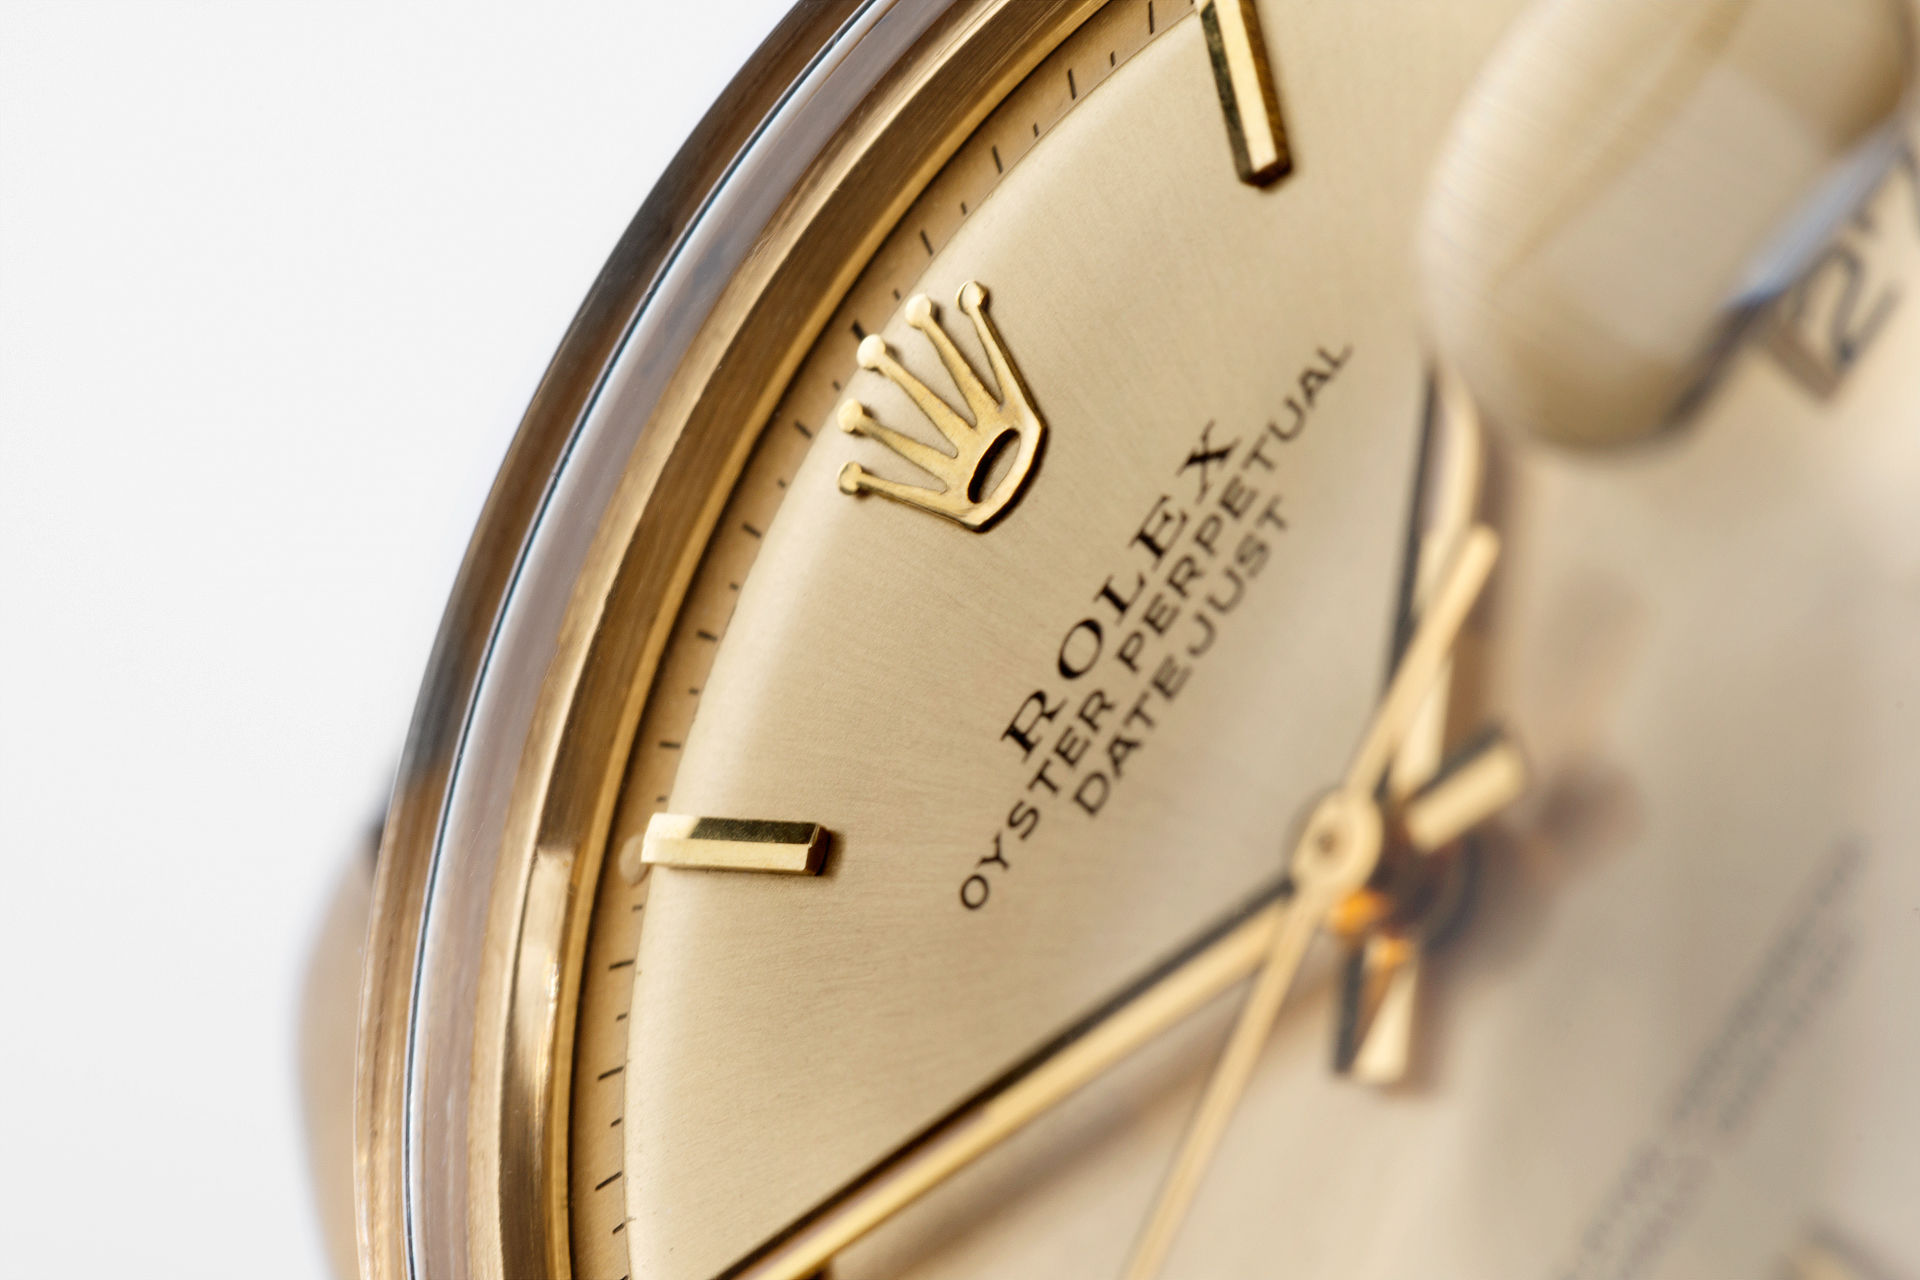 ref 1601 | 18ct Yellow Gold 'Pie Pan' | Rolex Datejust